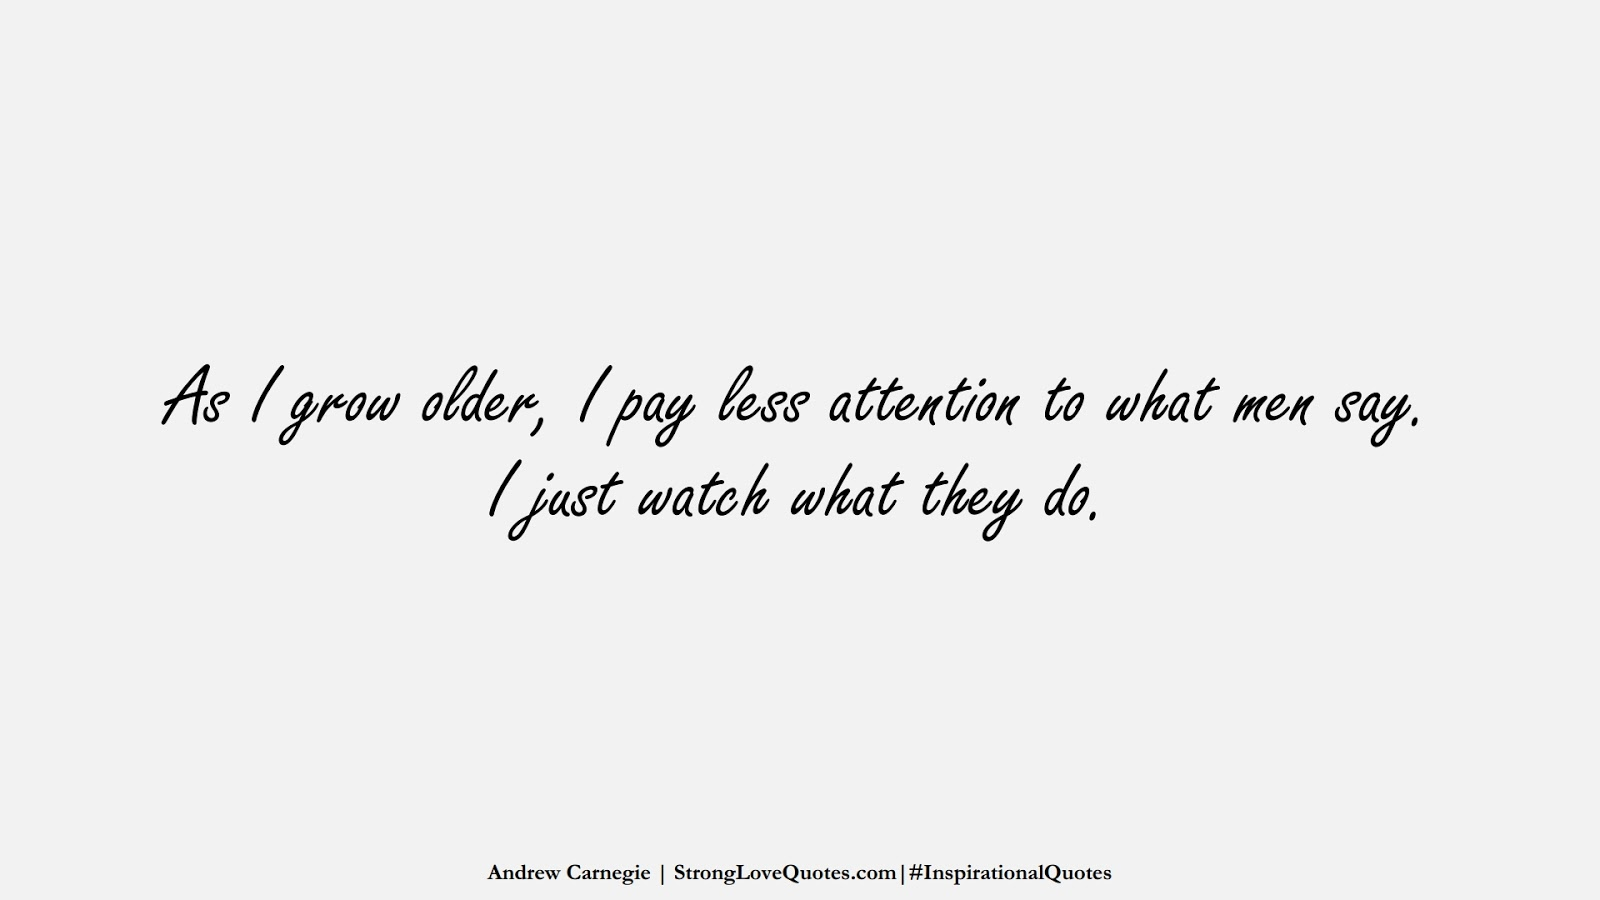 As I grow older, I pay less attention to what men say. I just watch what they do. (Andrew Carnegie);  #InspirationalQuotes